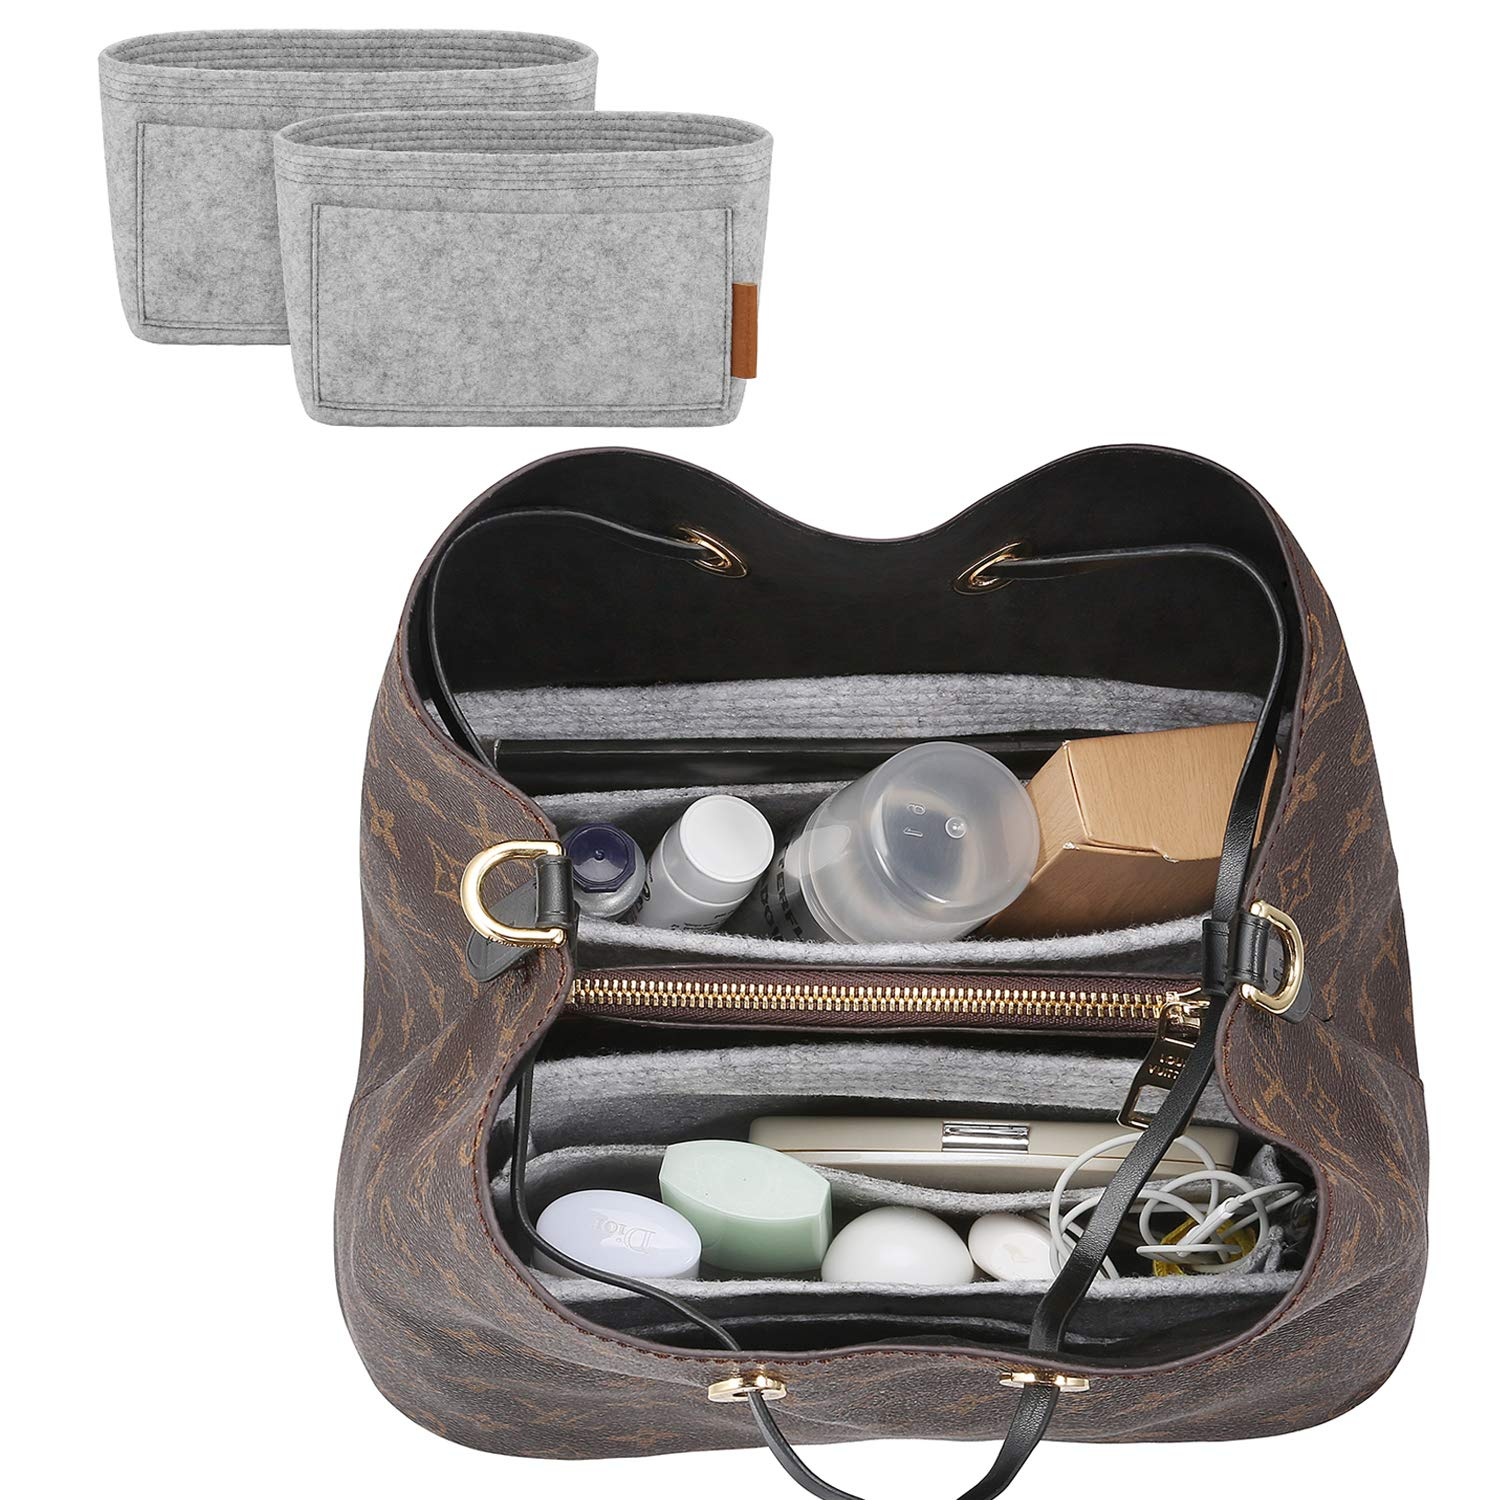 FOREGOER Felt Purse Insert Handbag Organizer Bag in Bag Organizer with Handles